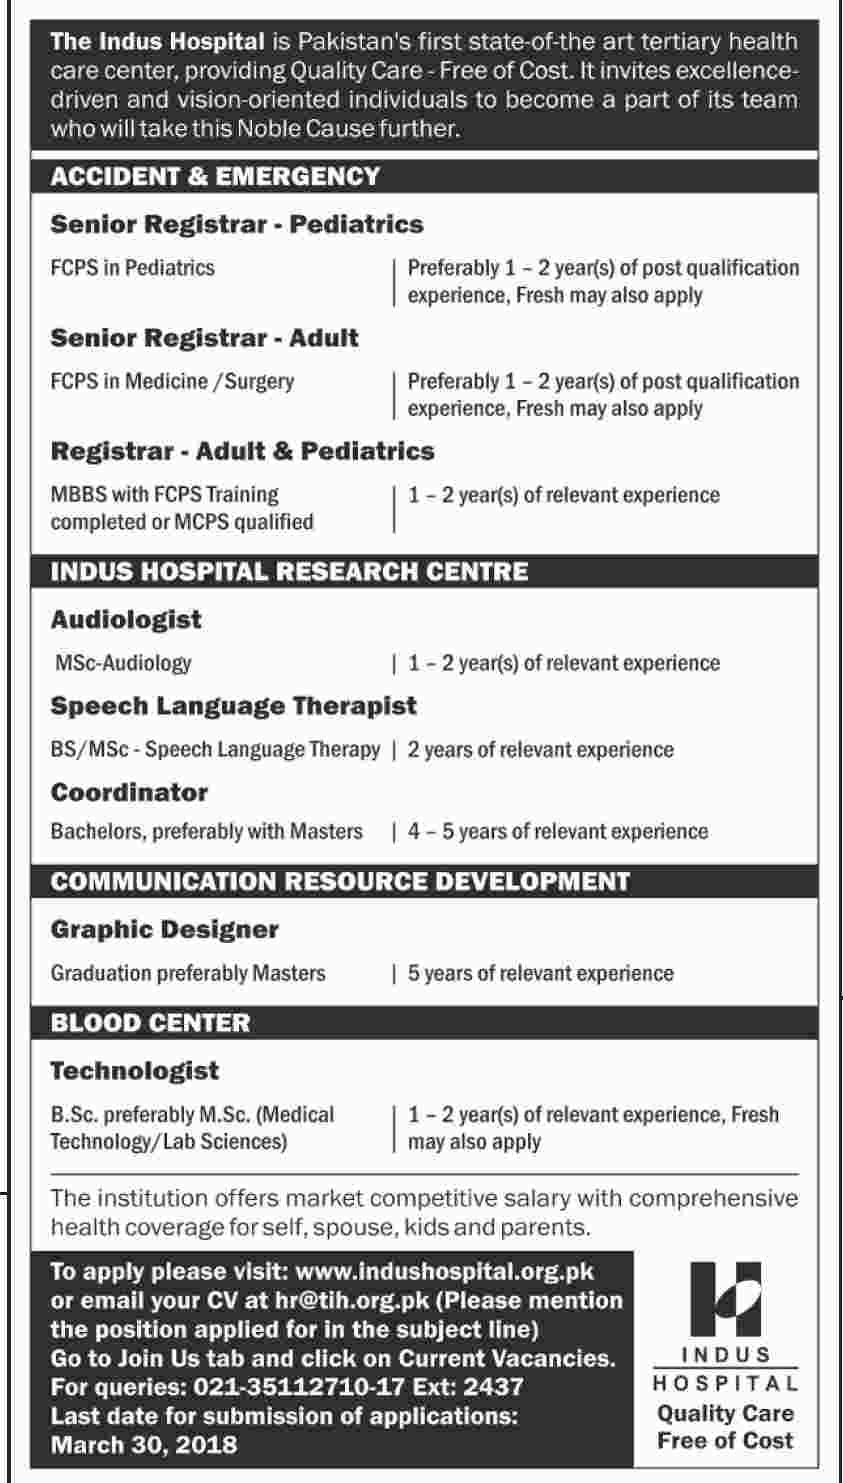 Jobs for Doctors in Pakistan, Medical Officer Jobs, Registrar Jobs, Specialists Jobs